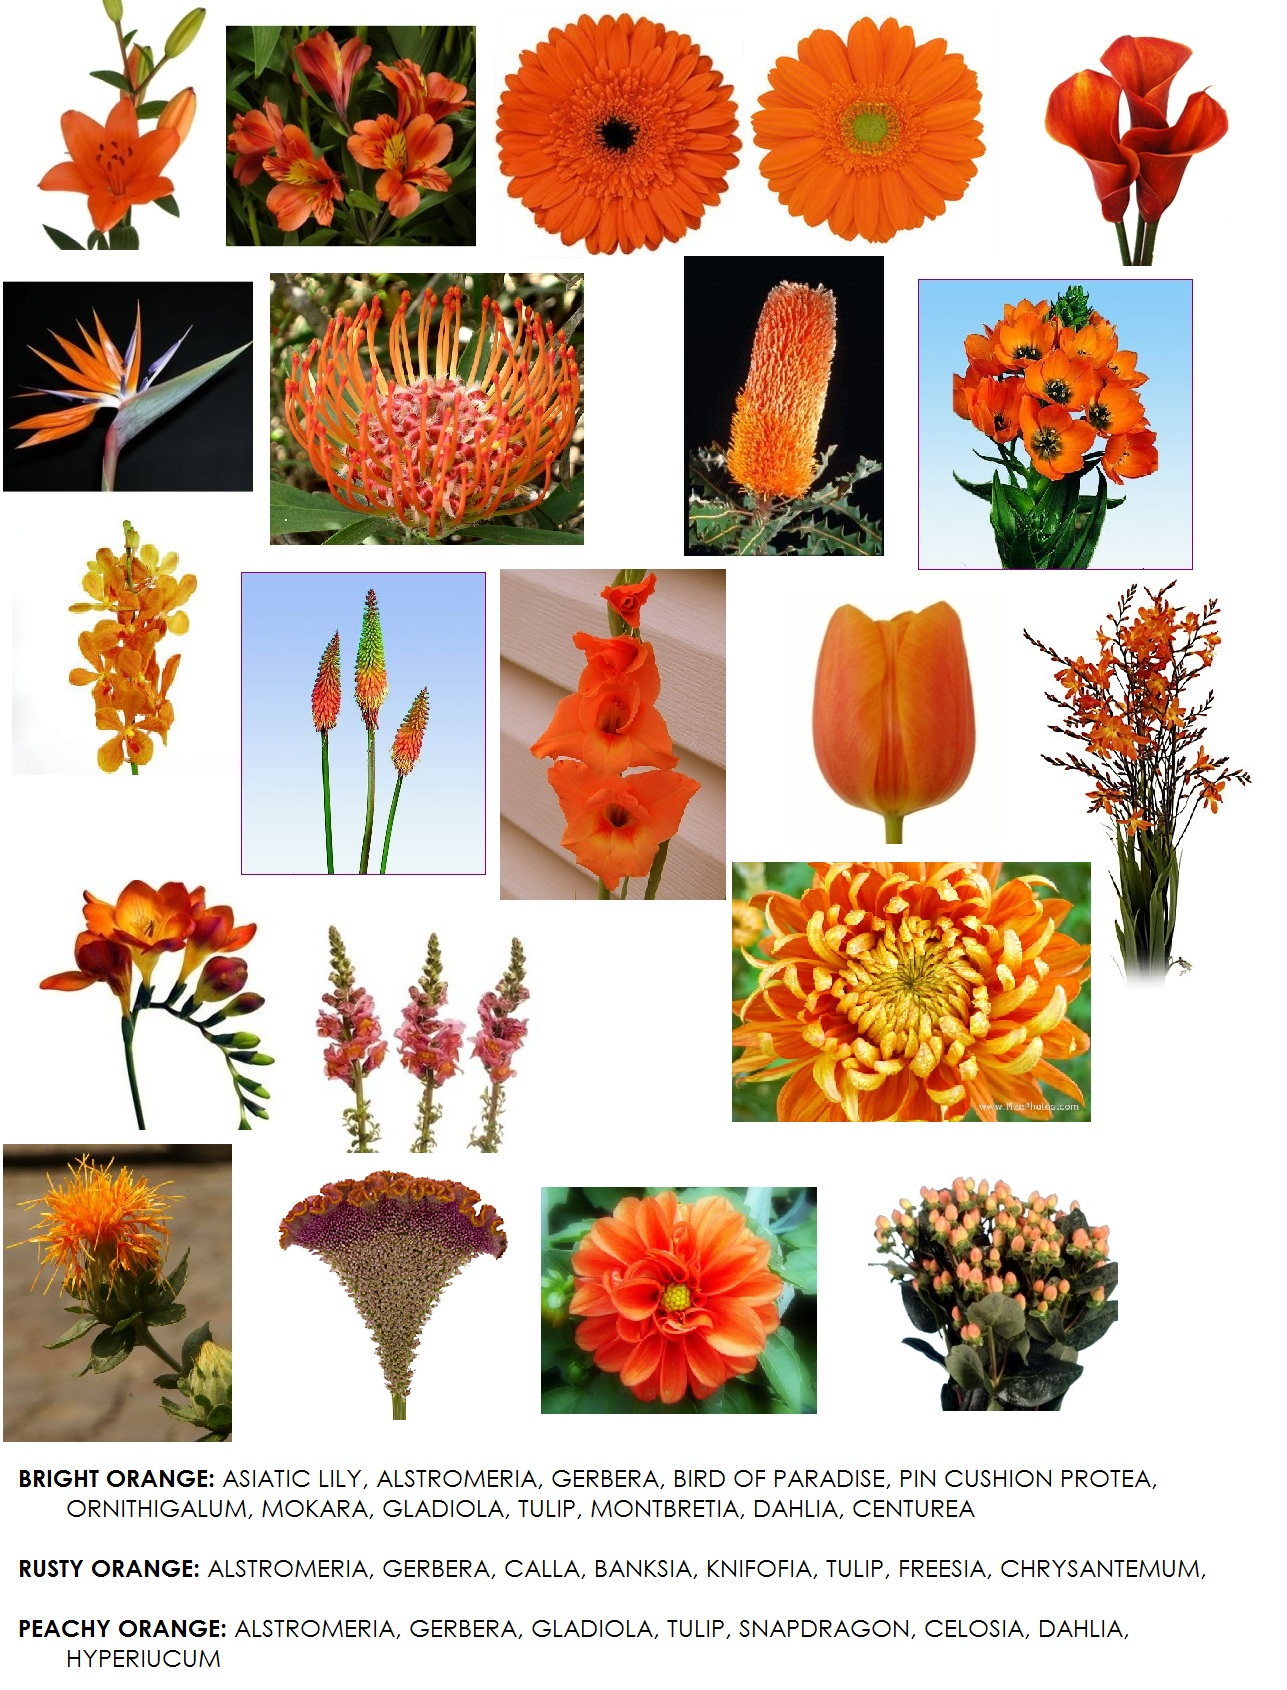 Fall Wedding Flowers Orange : Orange colored flowers readily available in western